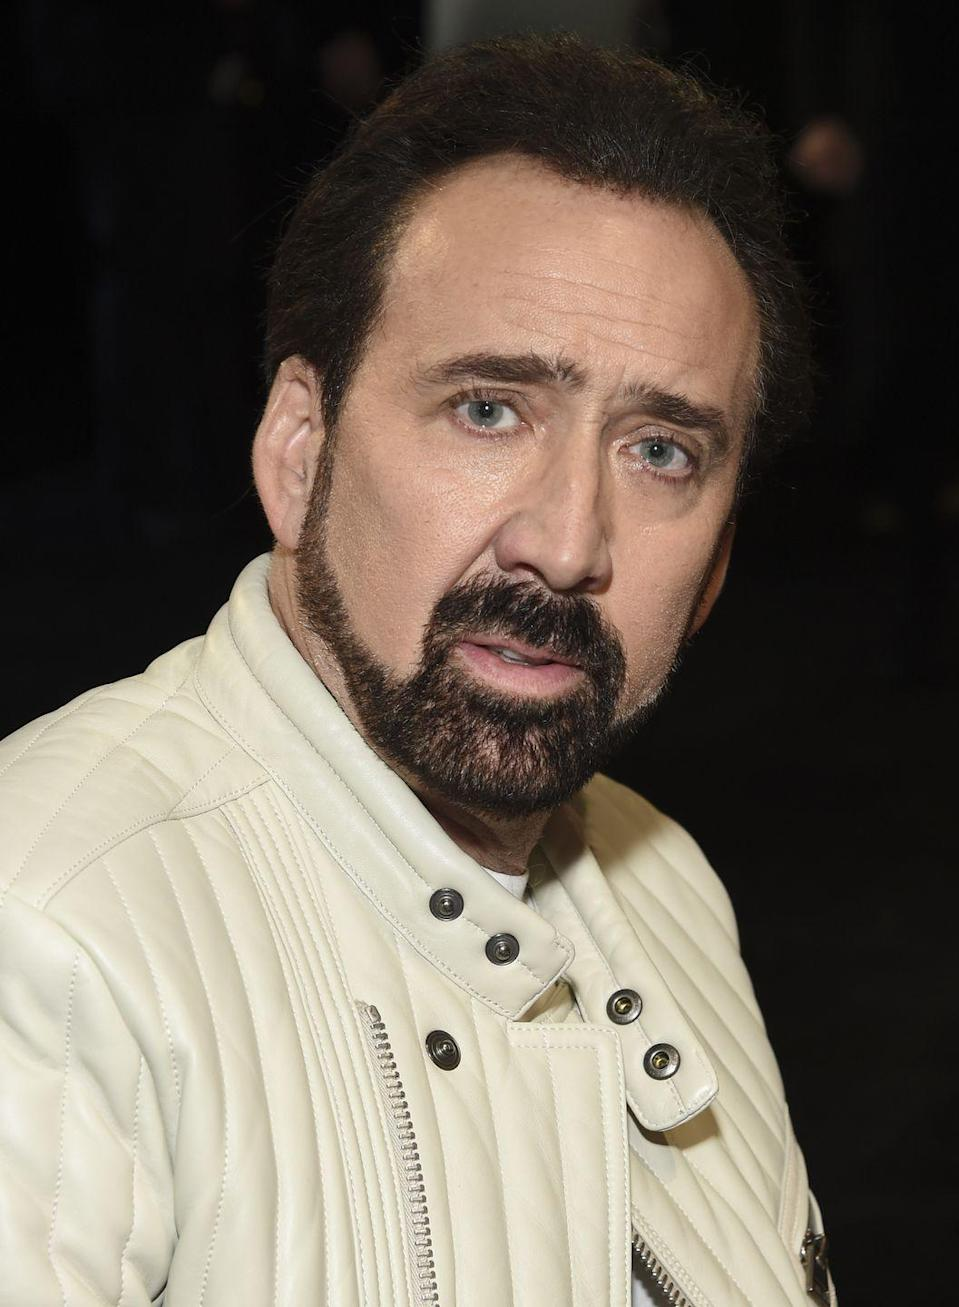 <p> So, let's try and get this straight: Nicolas Cage is starring in a film… as Nicolas Cage, but it's not a biopic. And it's not based on real events, but it's going to bring back some of Cage's best characters from years past? Played, again, by Cage. Sounds <em>just </em>absurd enough that it could be real? Sign us up. </p>